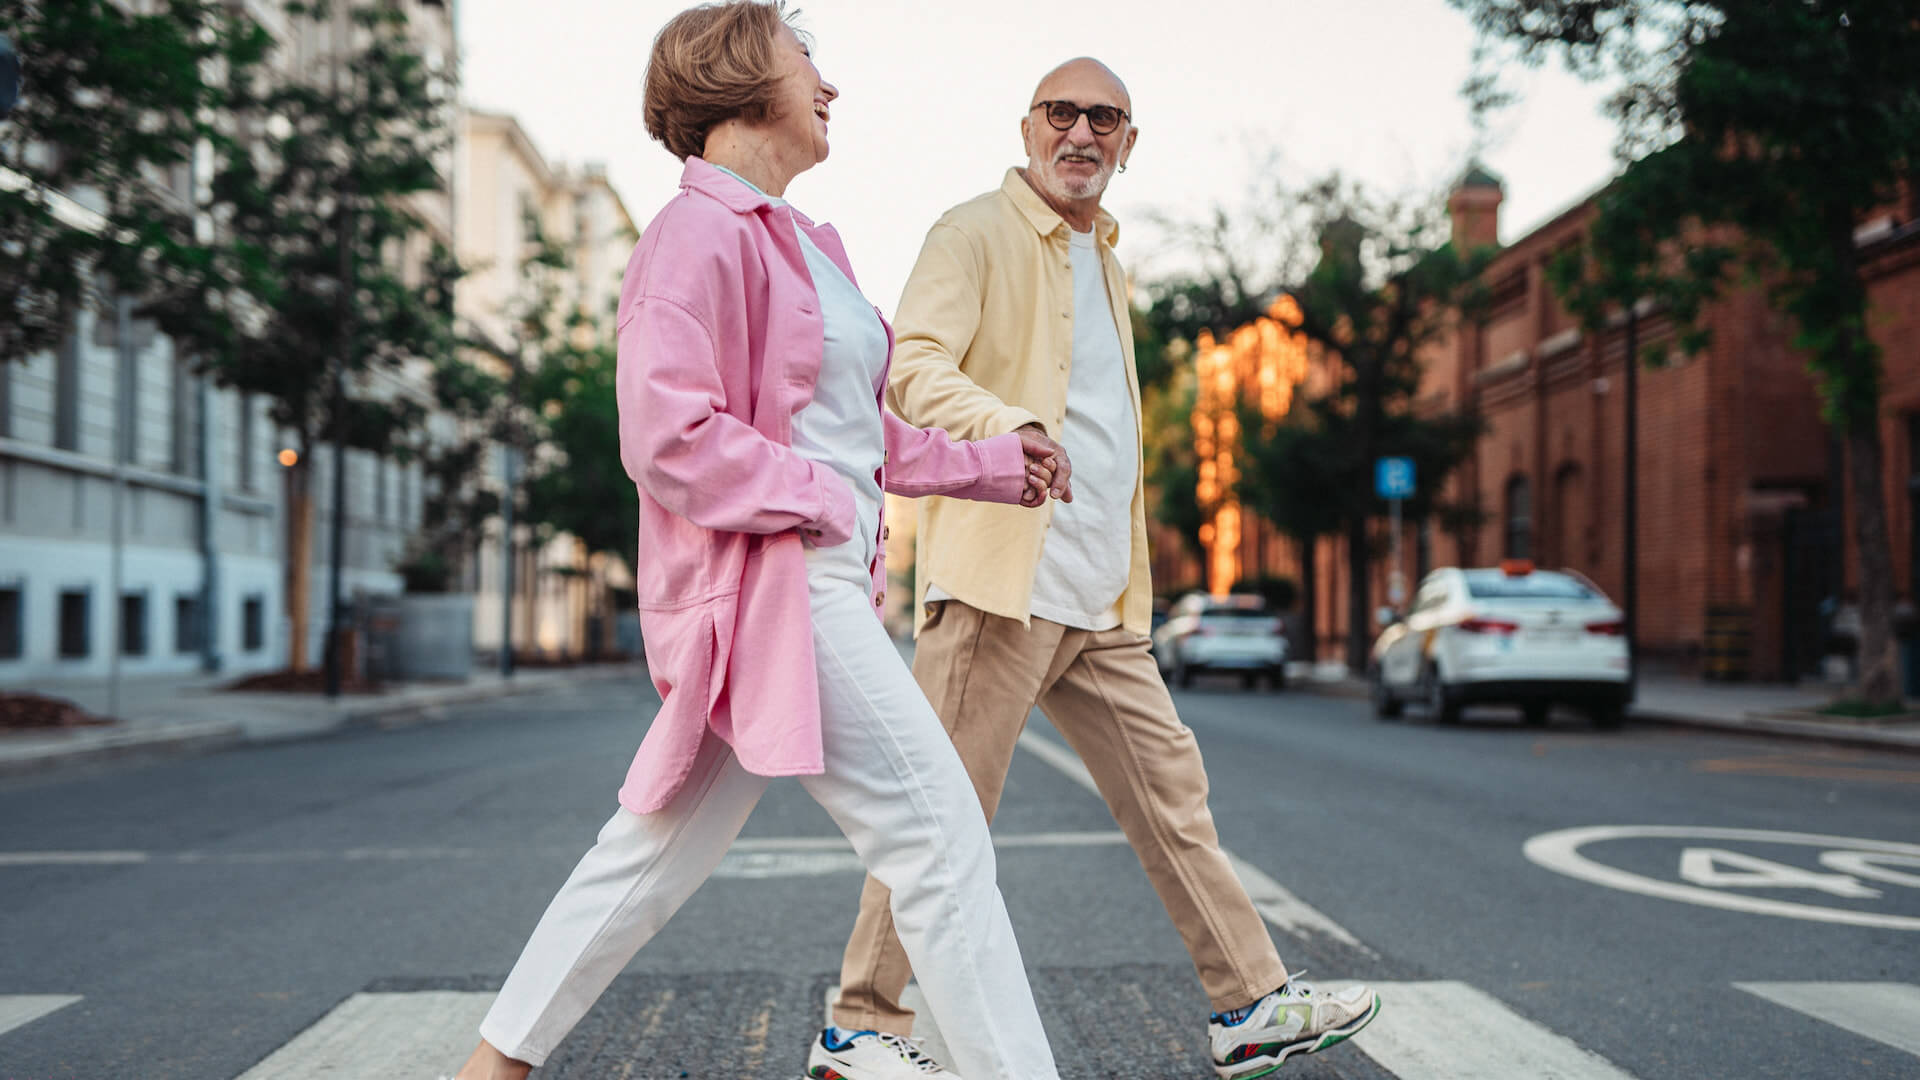 Happy Elderly Couple Holding Hands while Crossing on the Pedestrian Lane